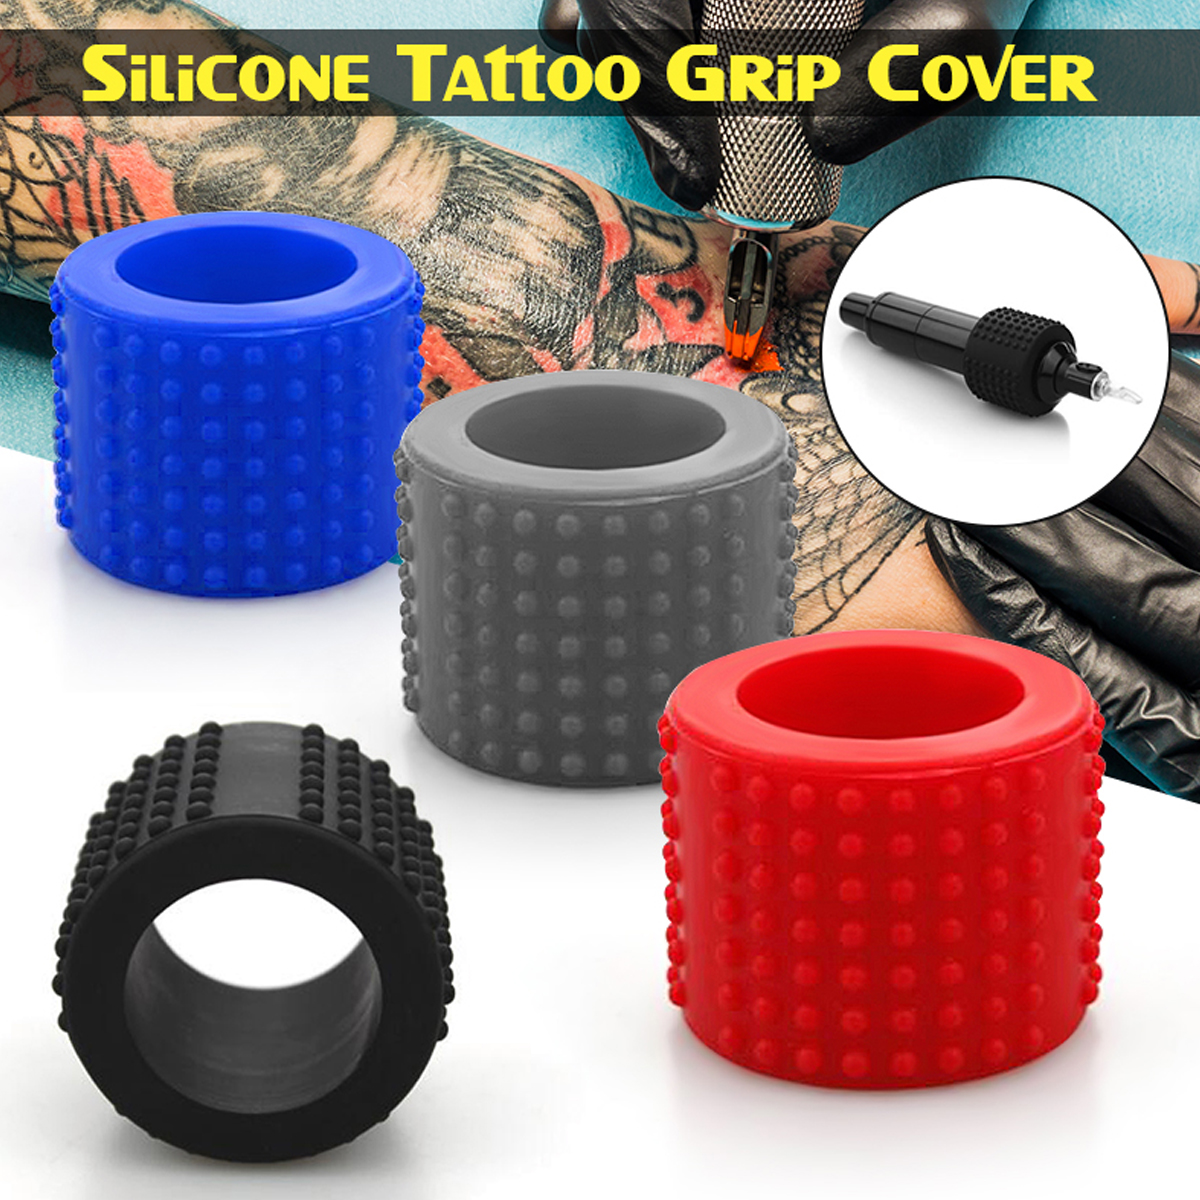 Silicone Comfortable Hand Cover For Tattoo Grip 25mm New Tattoo Grip Cover Skid Resistance Heat-resistant Black Red Blue GreySilicone Comfortable Hand Cover For Tattoo Grip 25mm New Tattoo Grip Cover Skid Resistance Heat-resistant Black Red Blue Grey